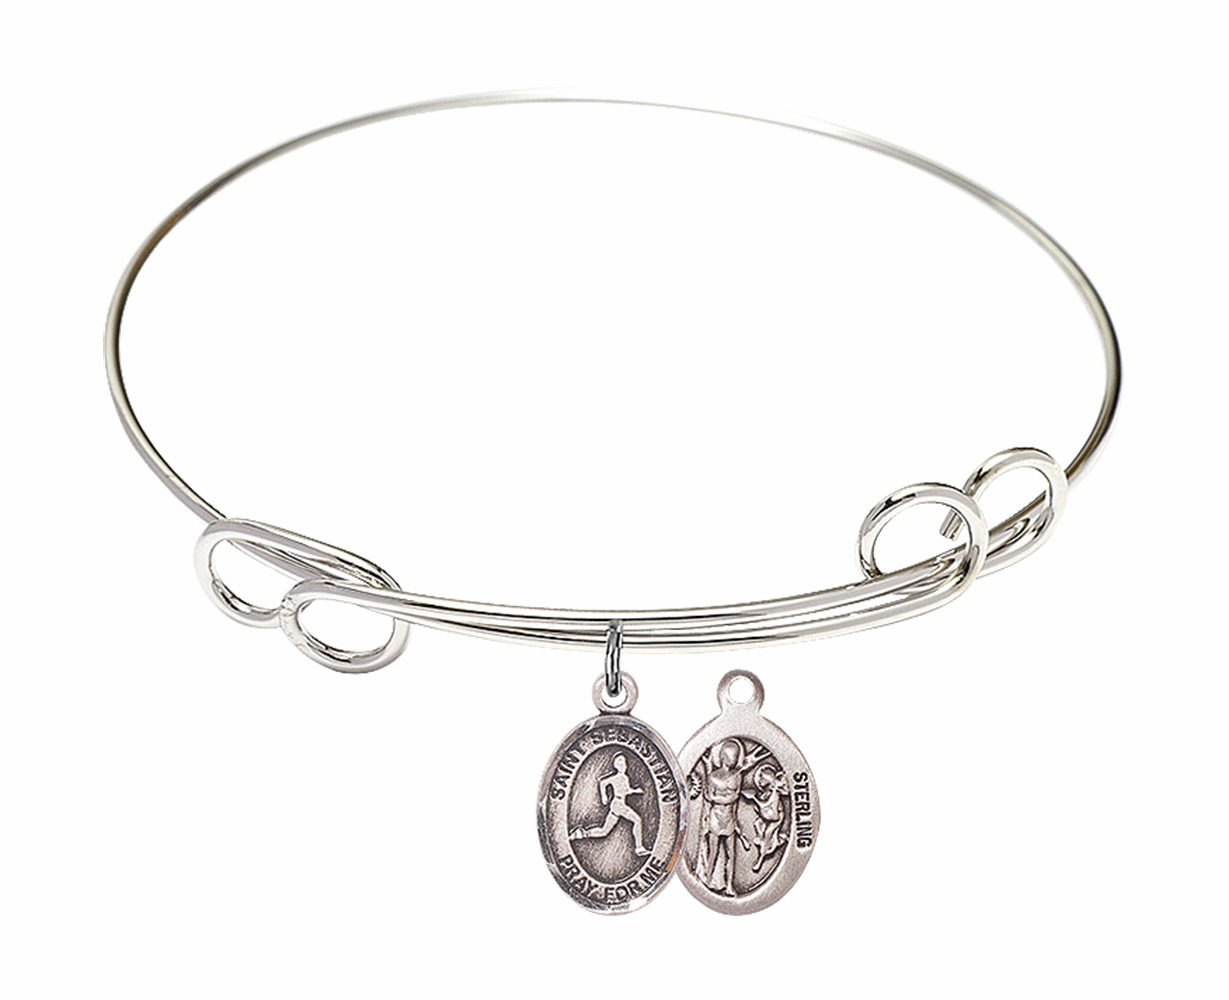 Round Loop St Sebastian Track and Field Bangle Charm Bracelet by Bliss